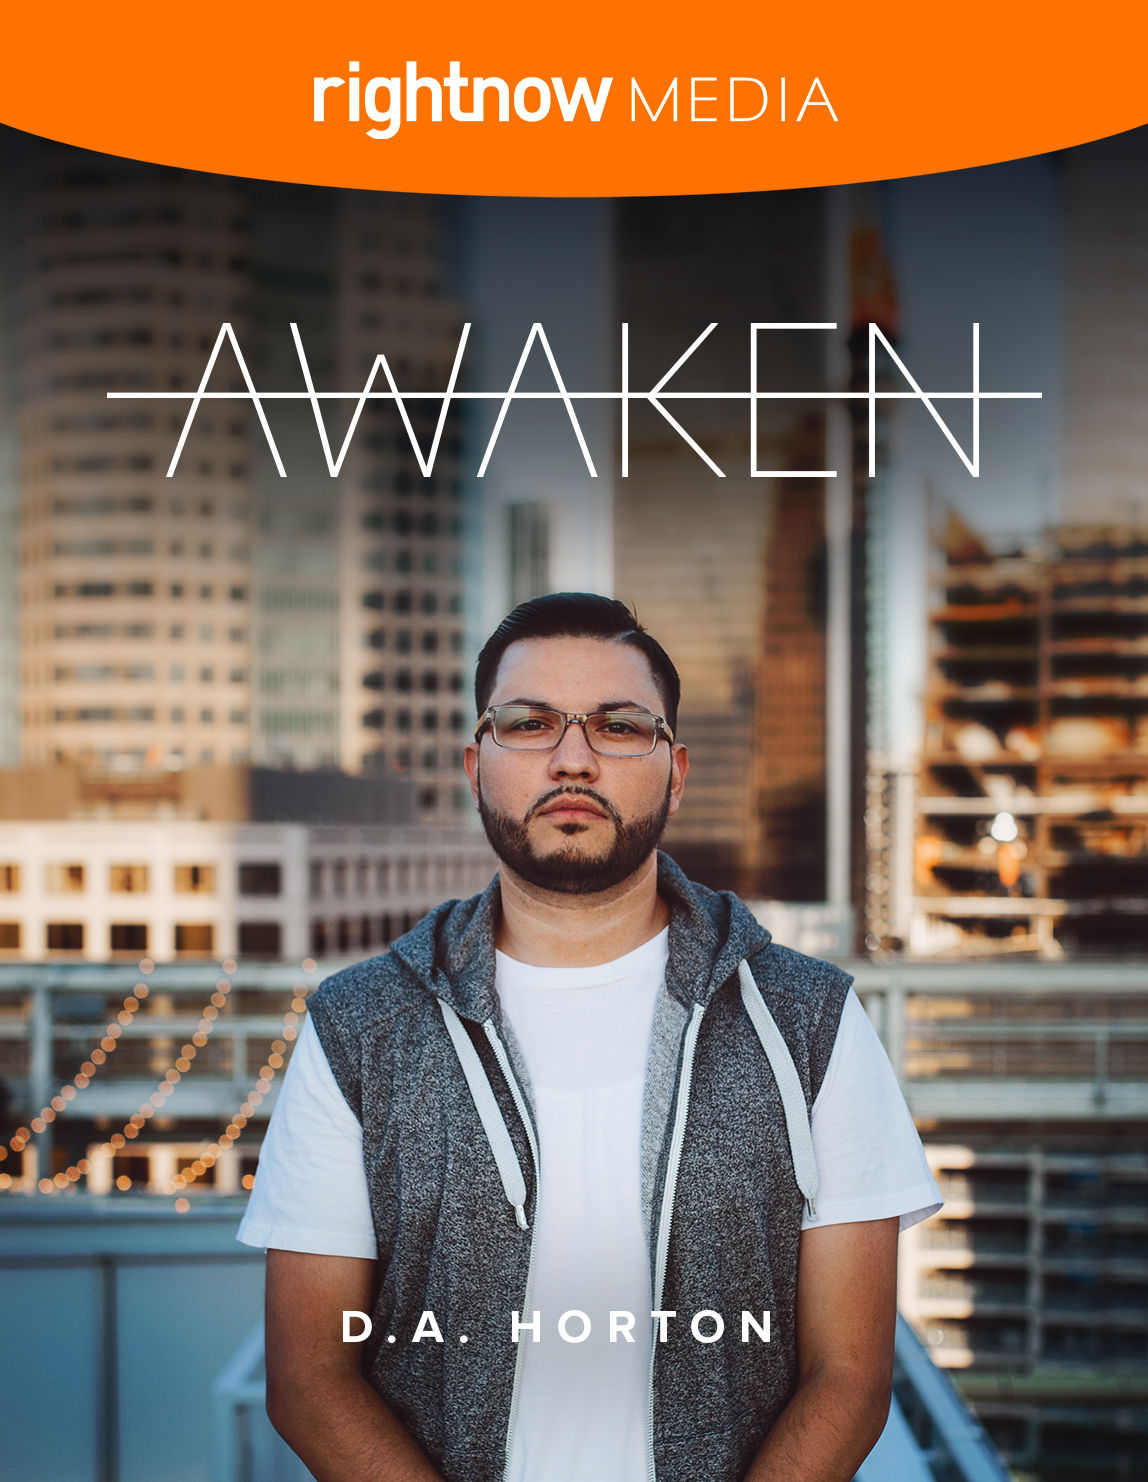 Rightnow media da horton awaken youth series malvernweather Image collections